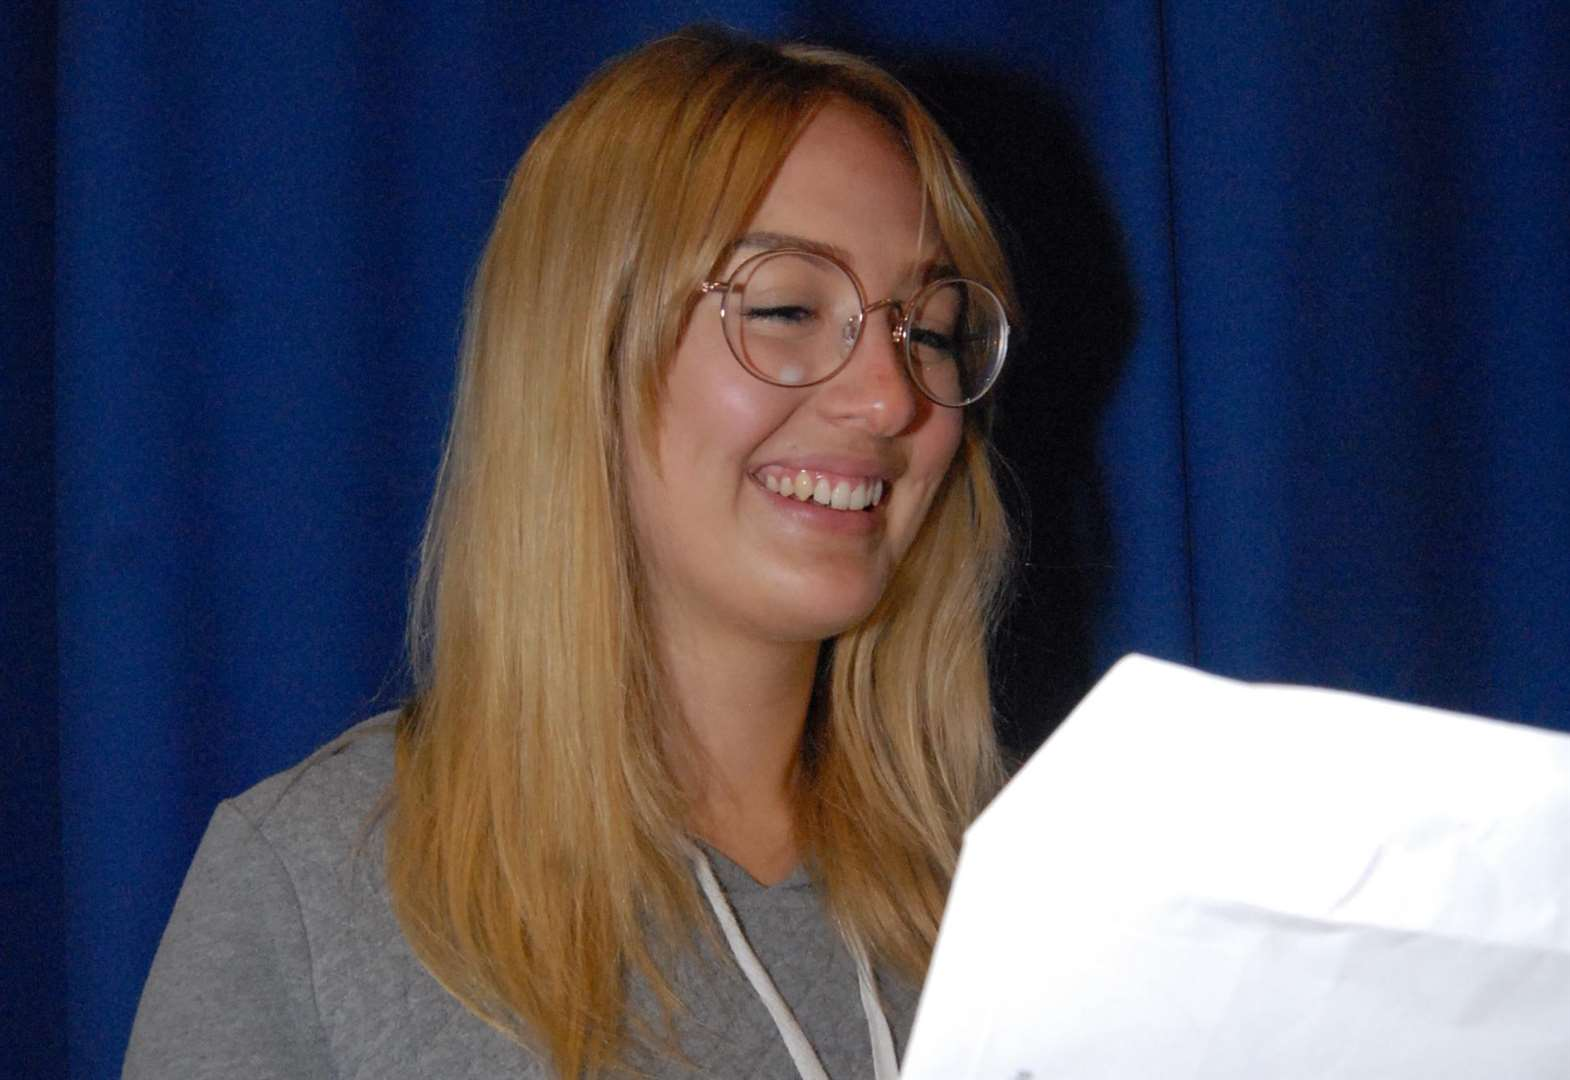 A-levels: Bourne Academy matches record results